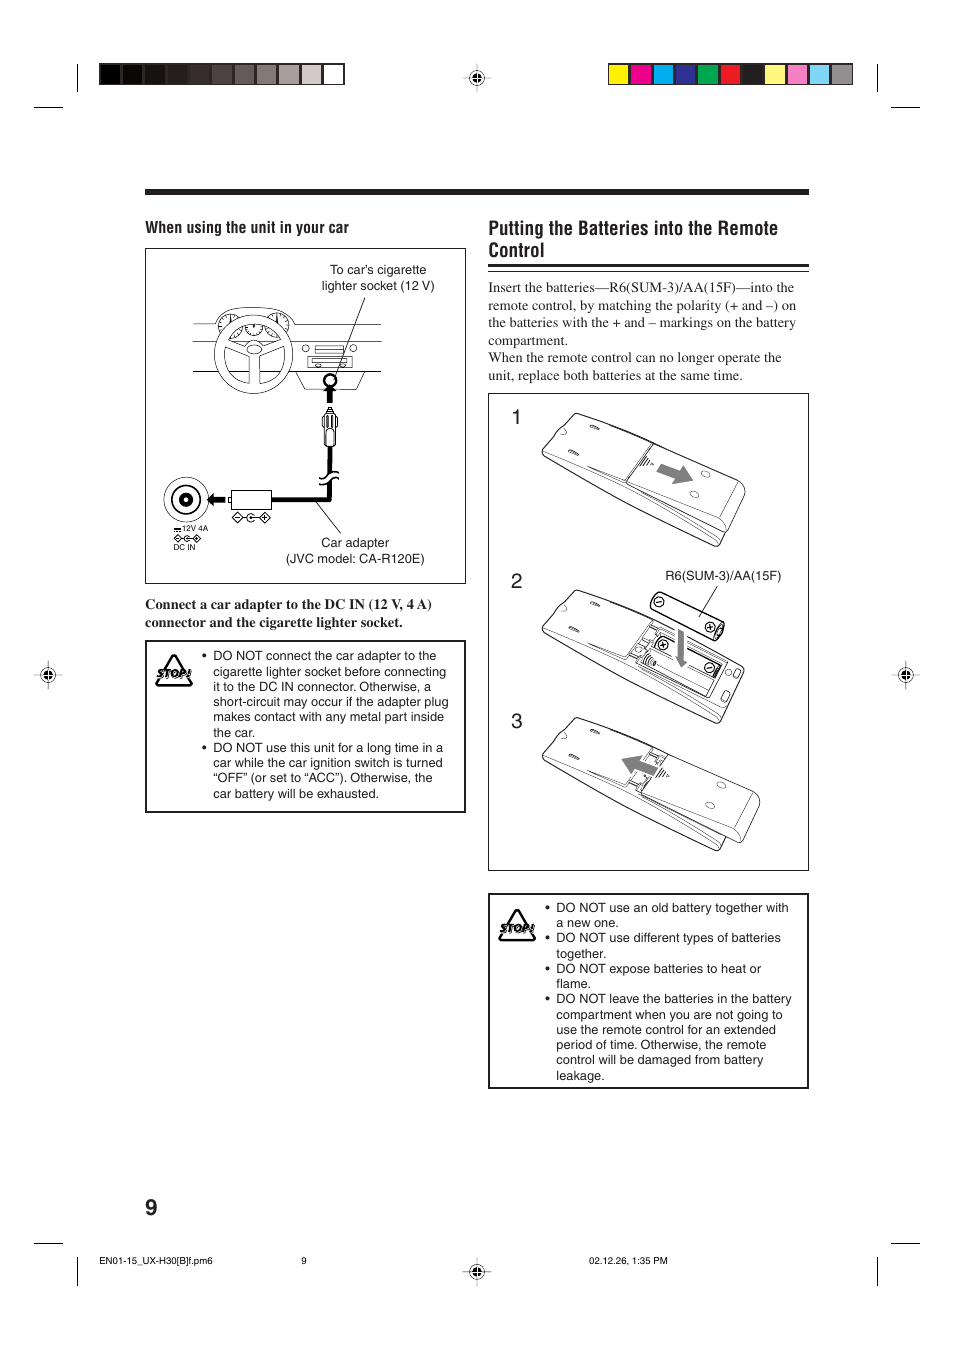 Putting The Batteries Into Remote Control Jvc Ca Uxh35 User Short Circuit Car Battery Manual Page 12 32